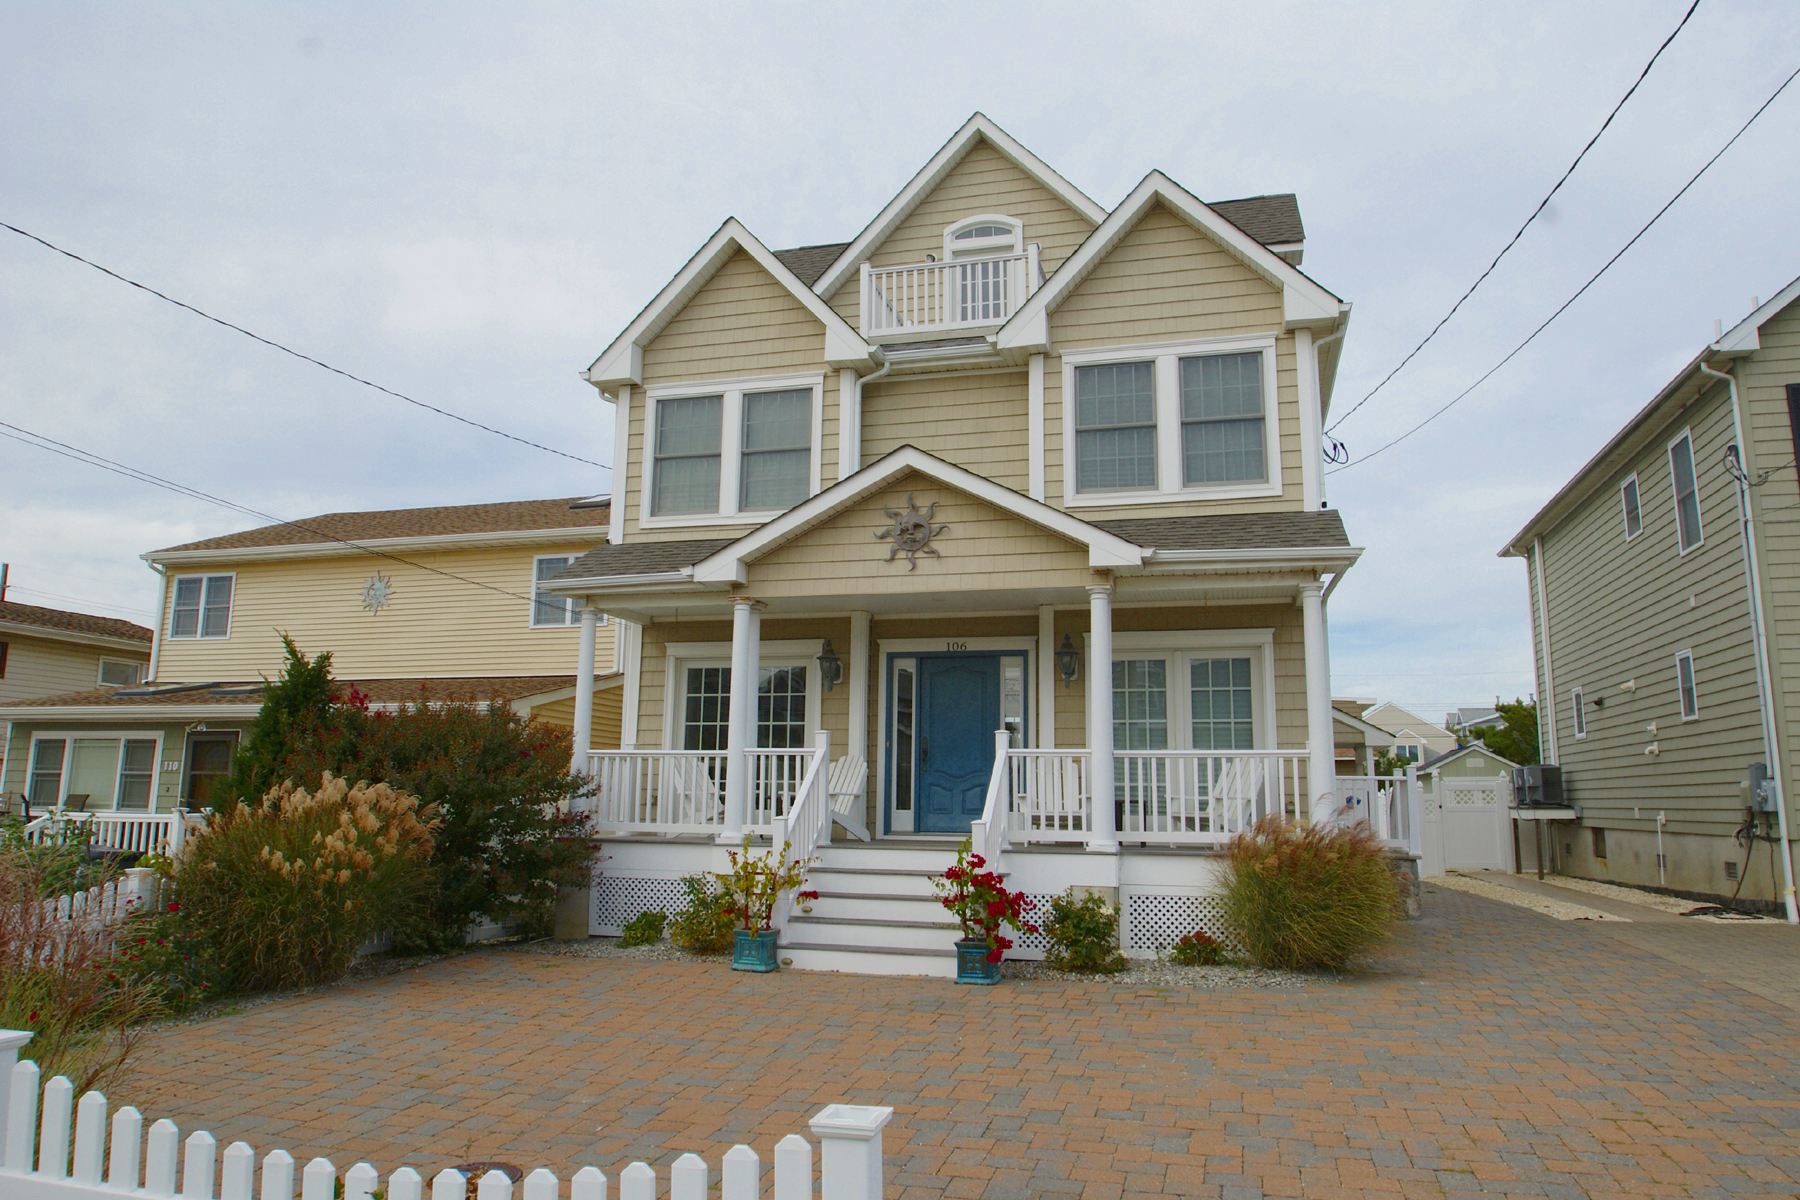 Einfamilienhaus für Verkauf beim Beautiful Shore Colonial Located Just 1 1/2 Blocks To Beach 106 3rd Avenue, Normandy Beach, New Jersey 08739 Vereinigte Staaten